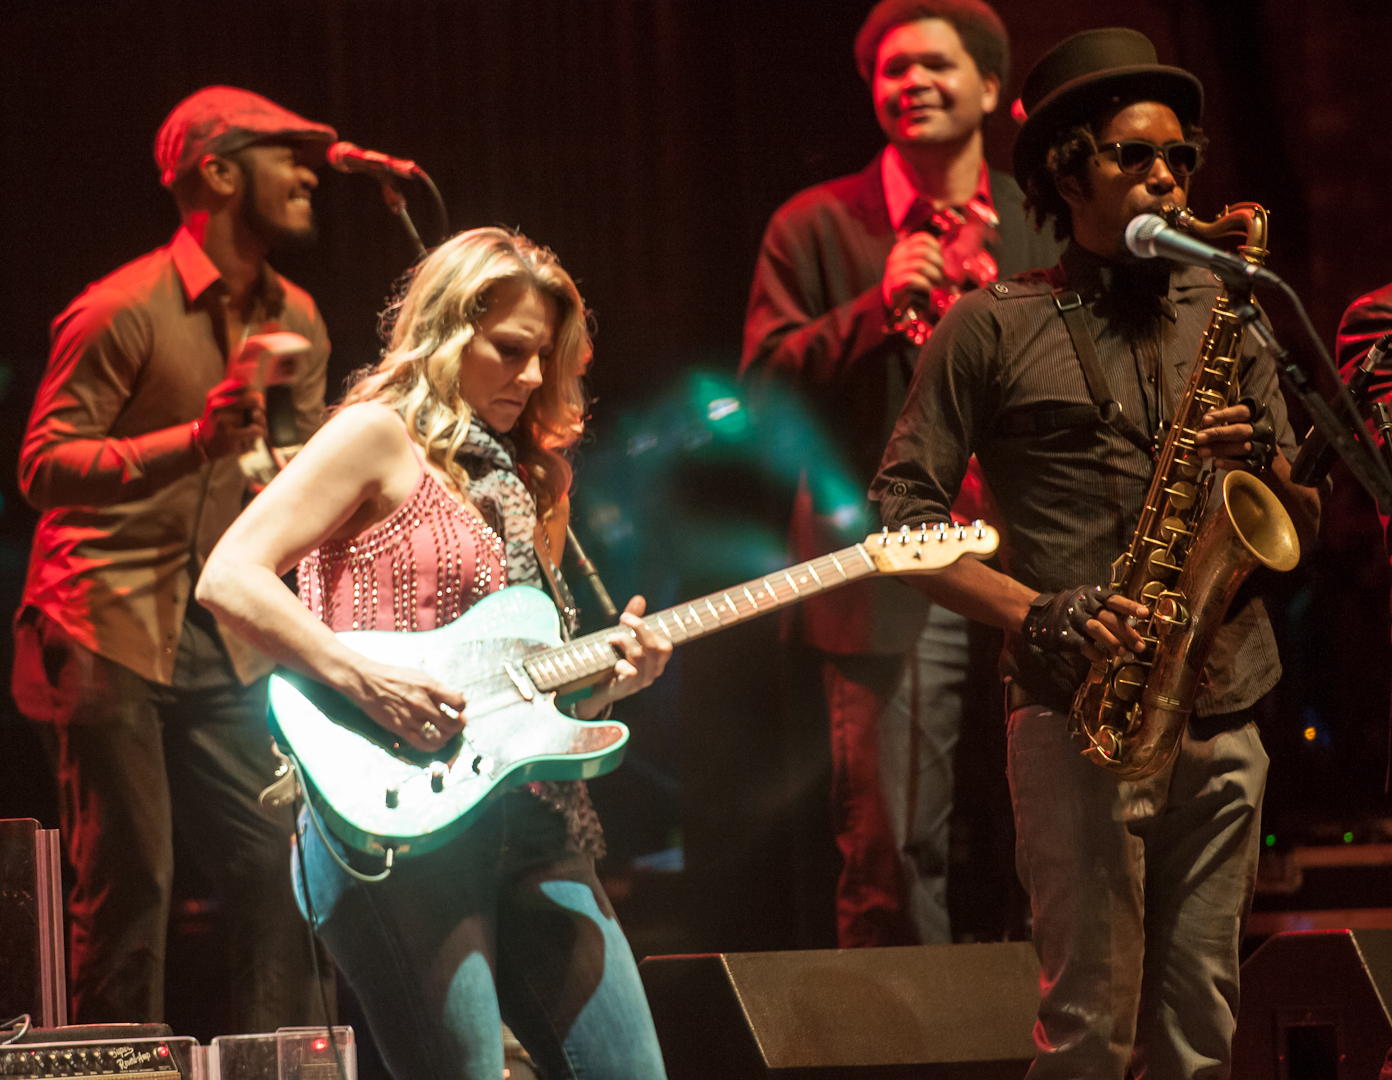 Susan Tedeschi, Mark Rivers, Mike Mattison and Kebbie Williams with the Tedeschi Trucks Band at the Beacon